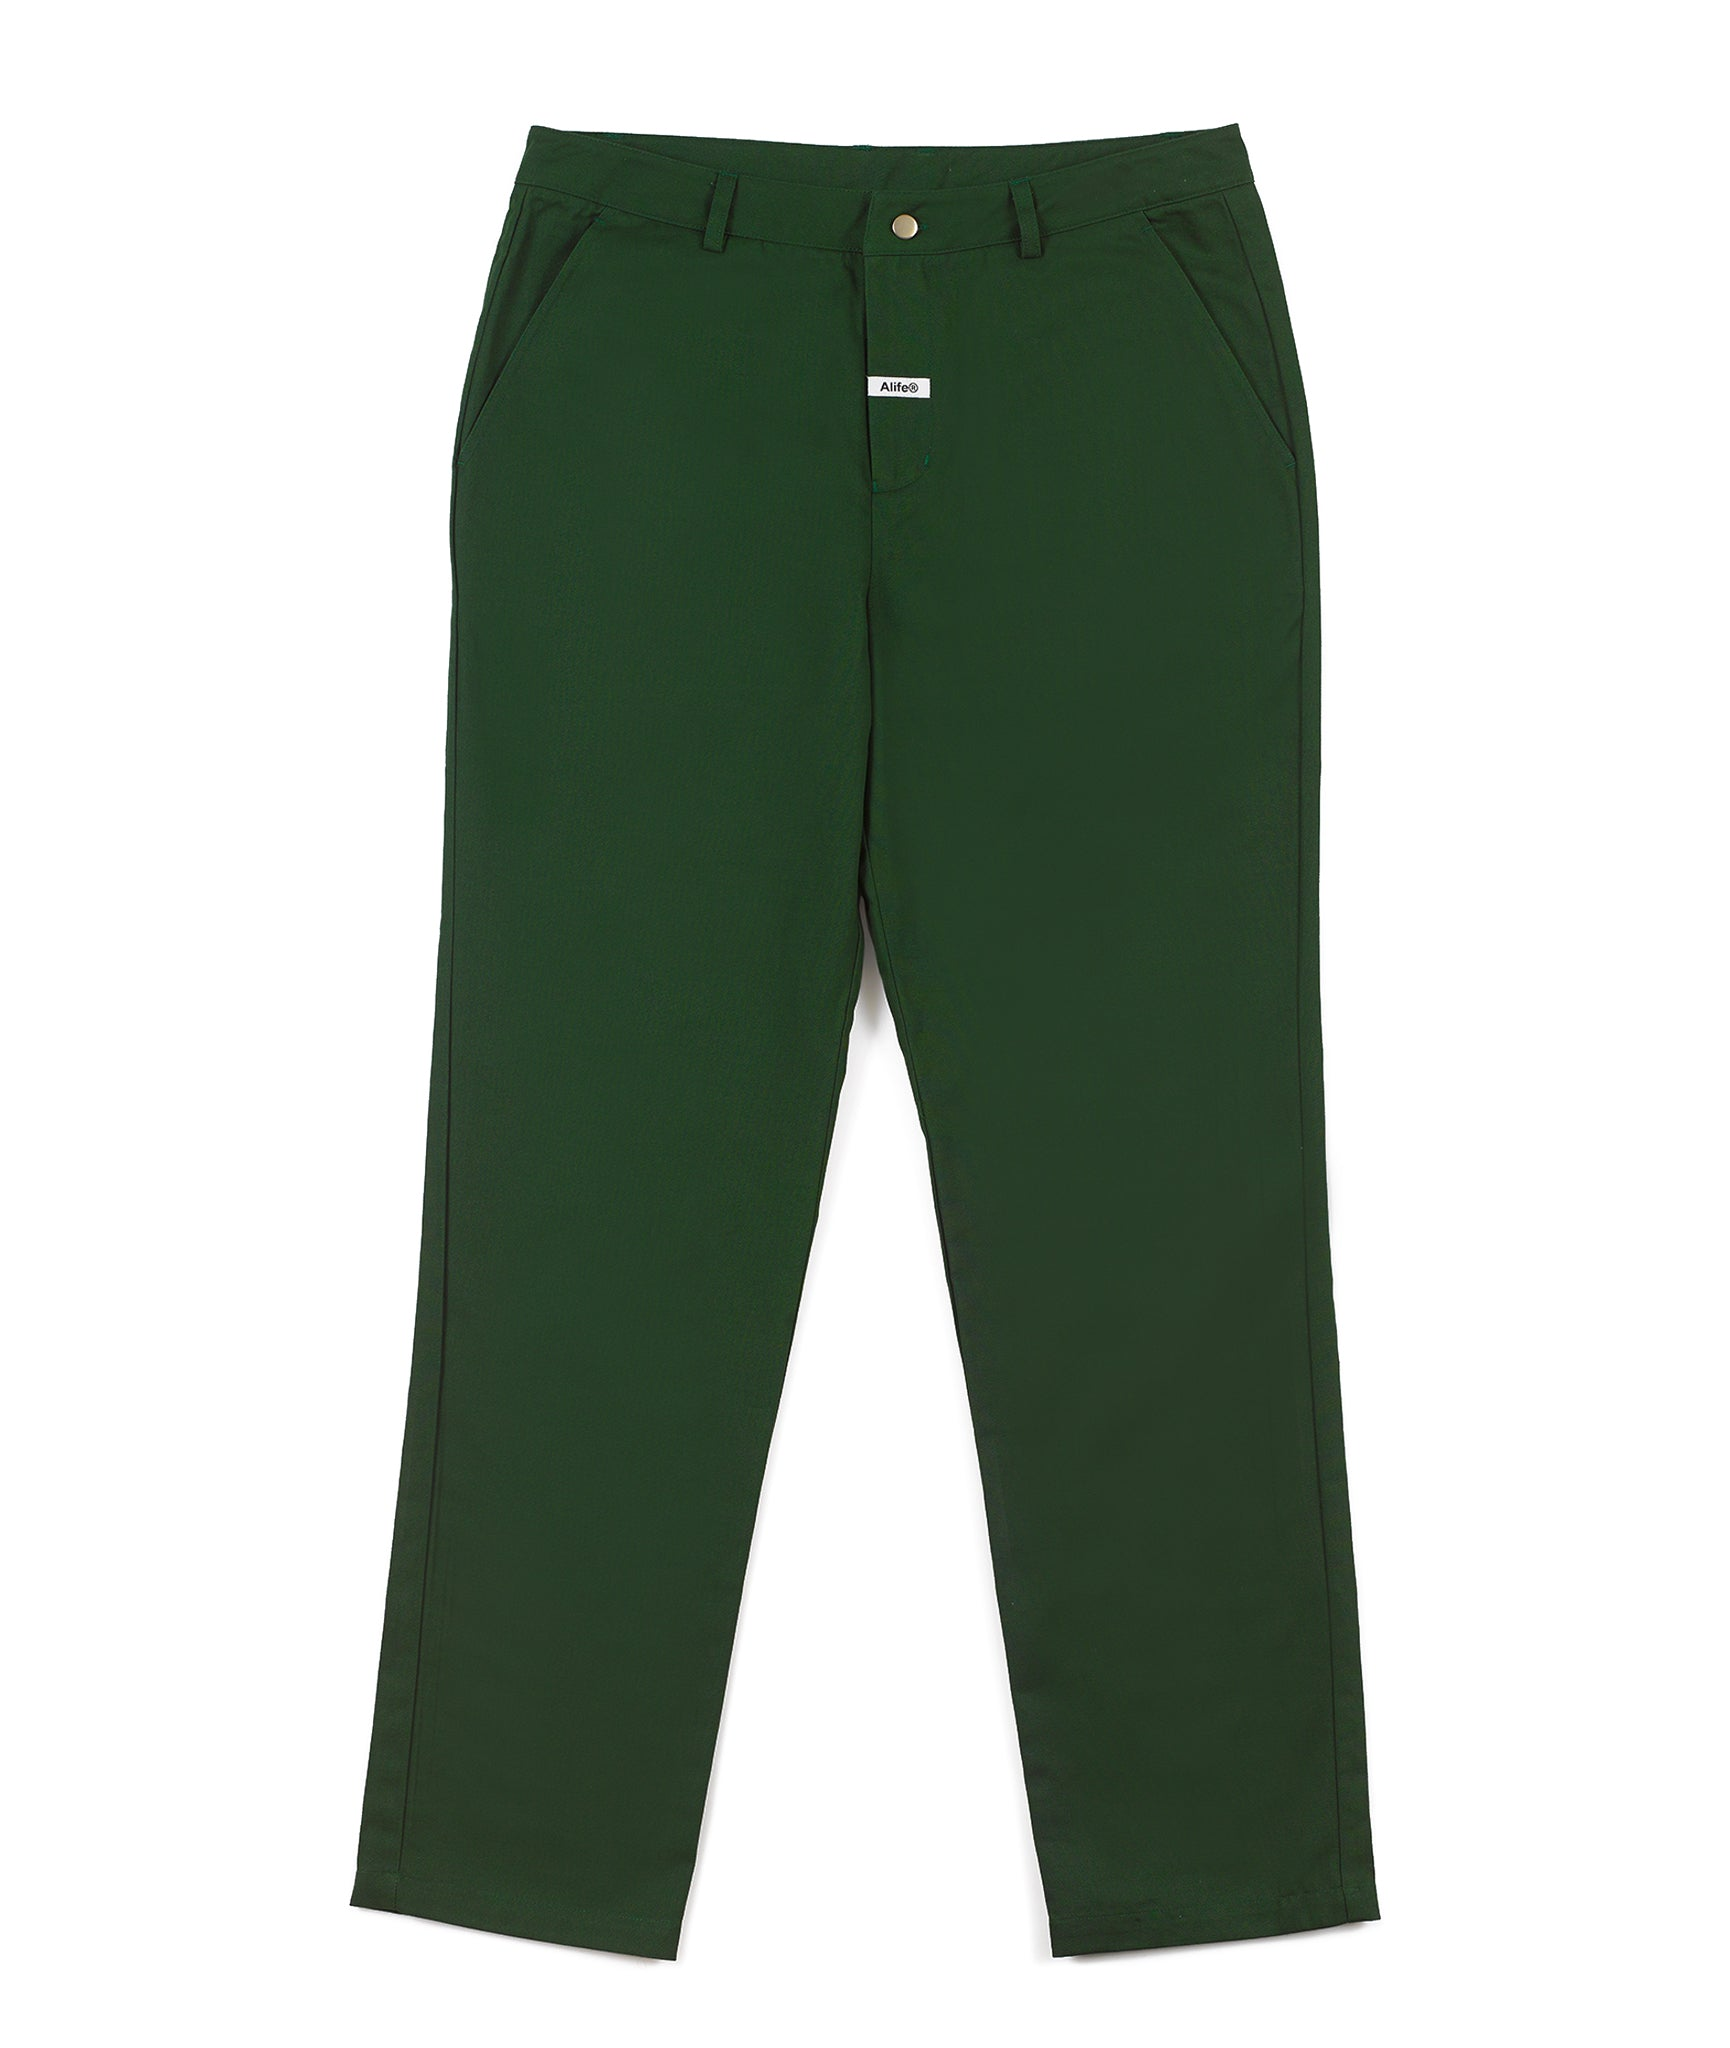 Alife Work Pant - Hunter Green